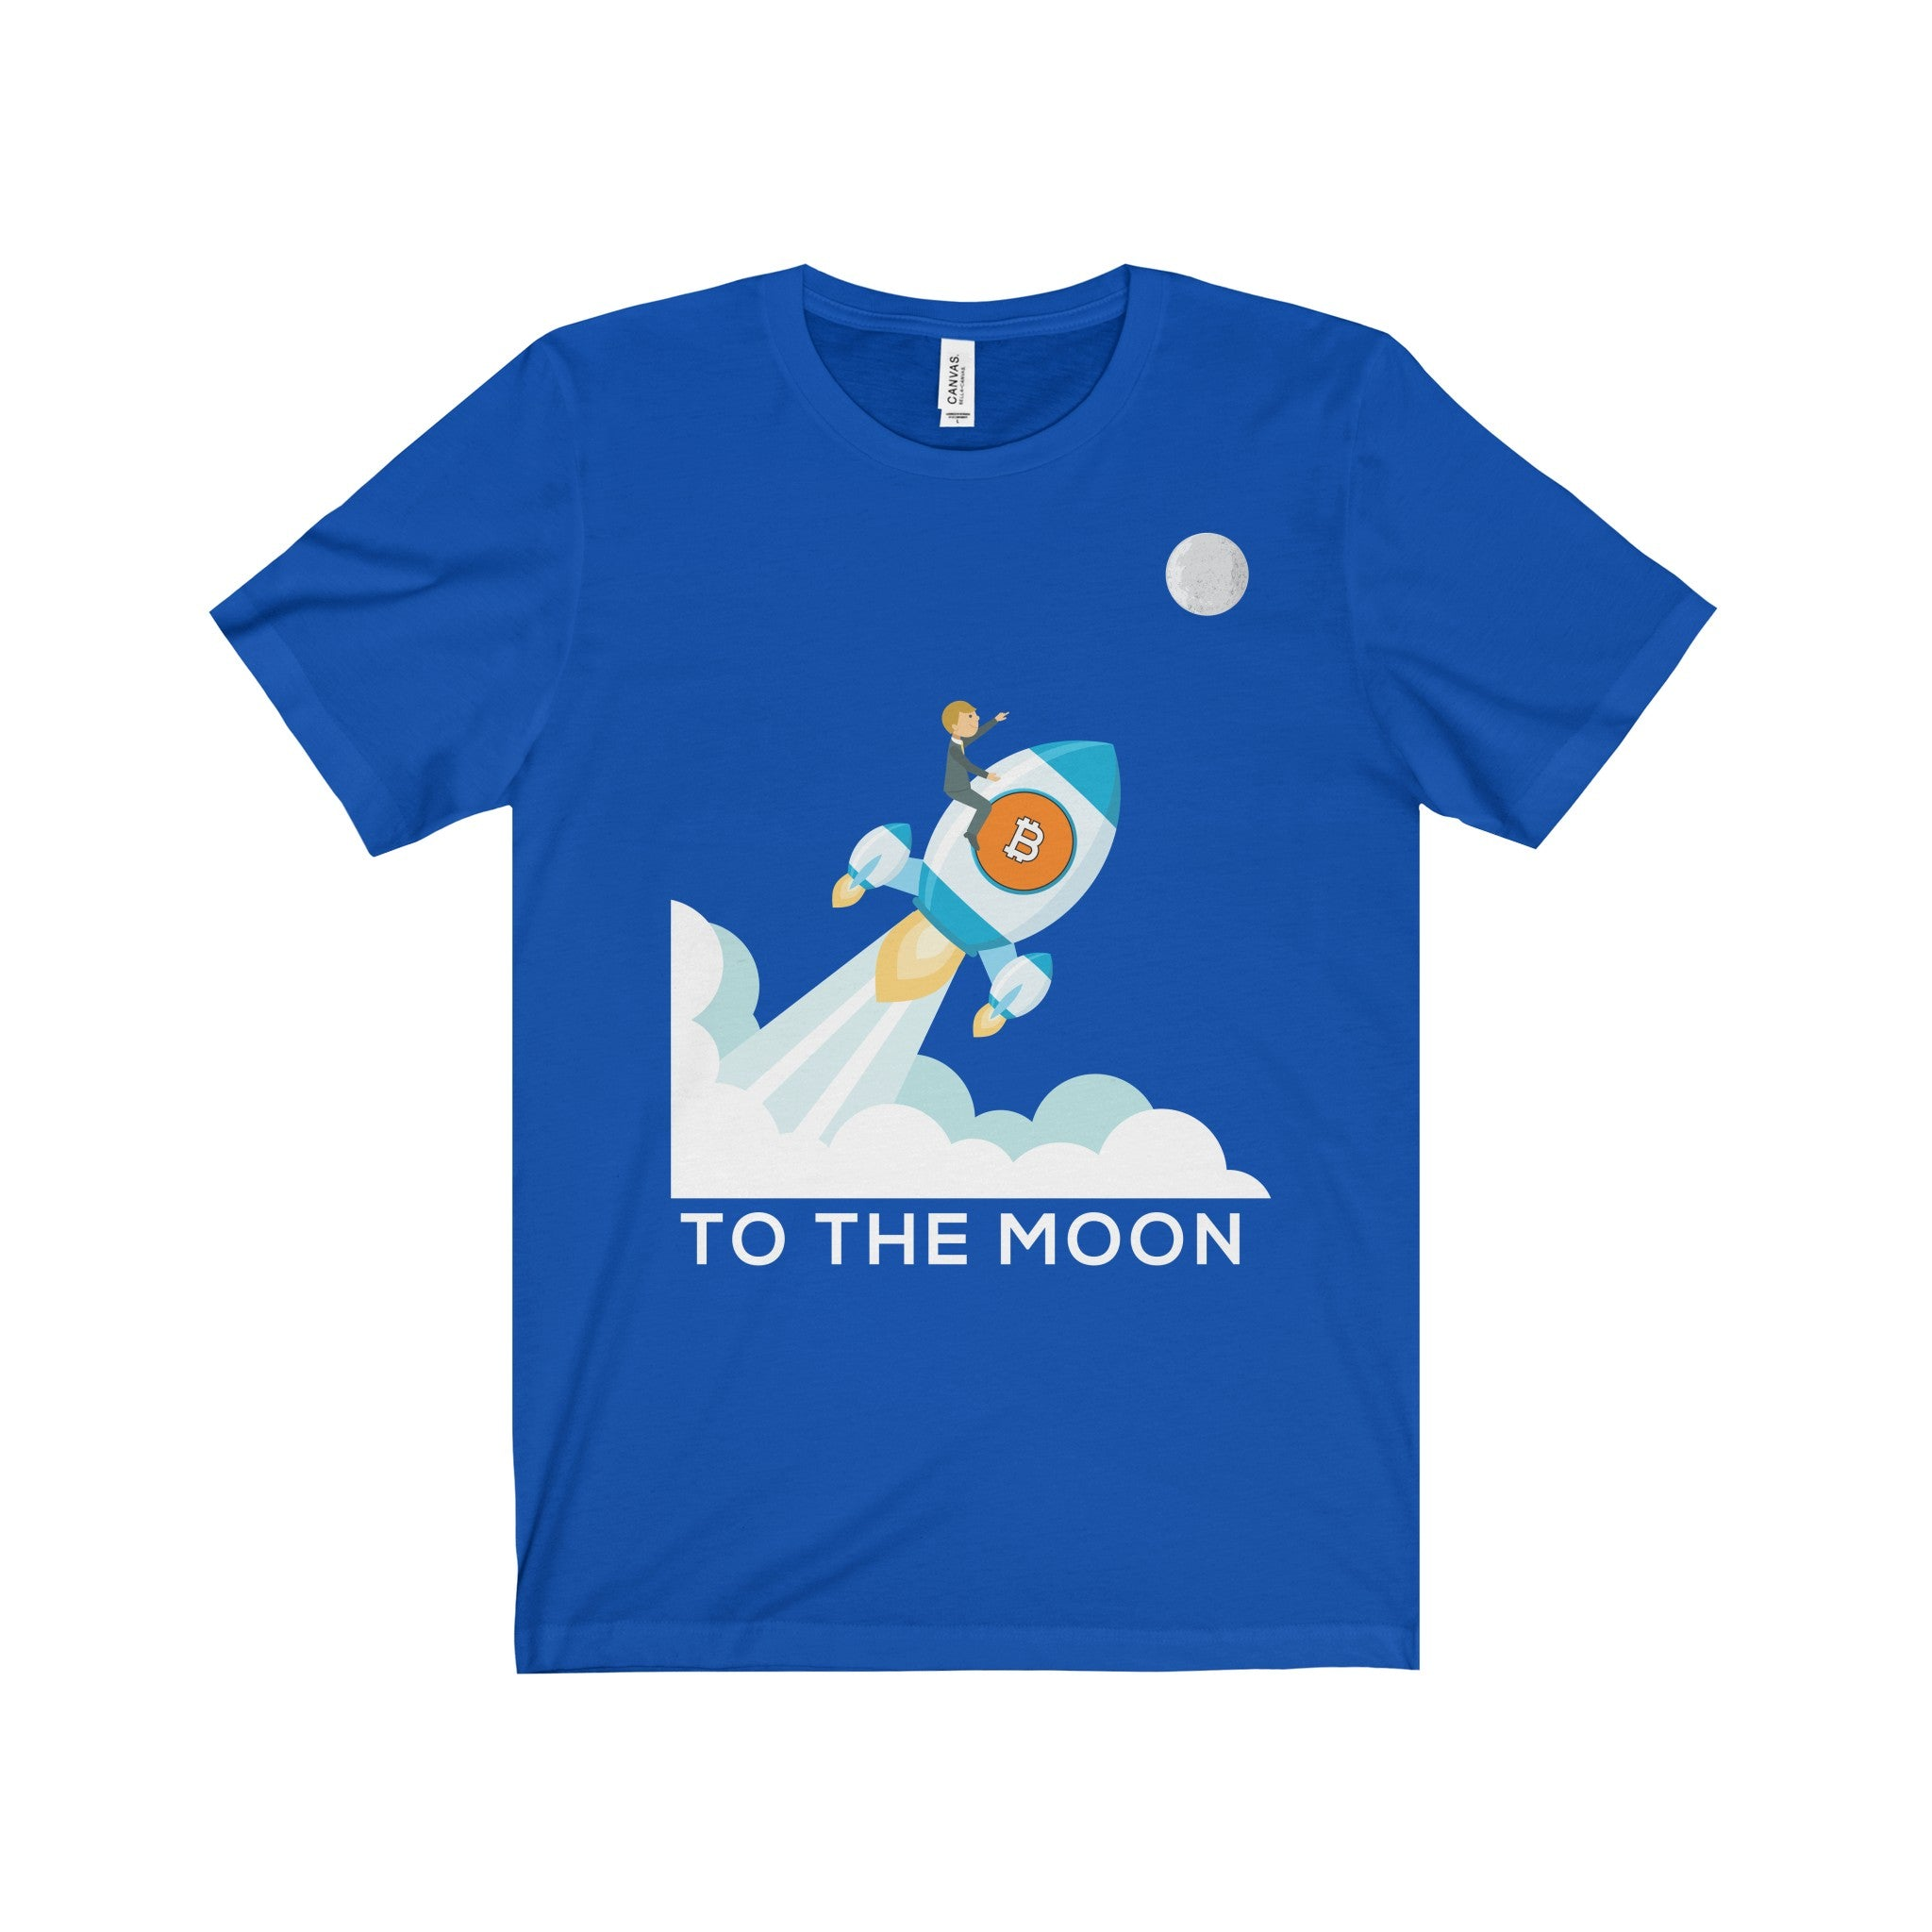 Bitcoin To The Moon! Unisex Jersey Short Sleeve Tee